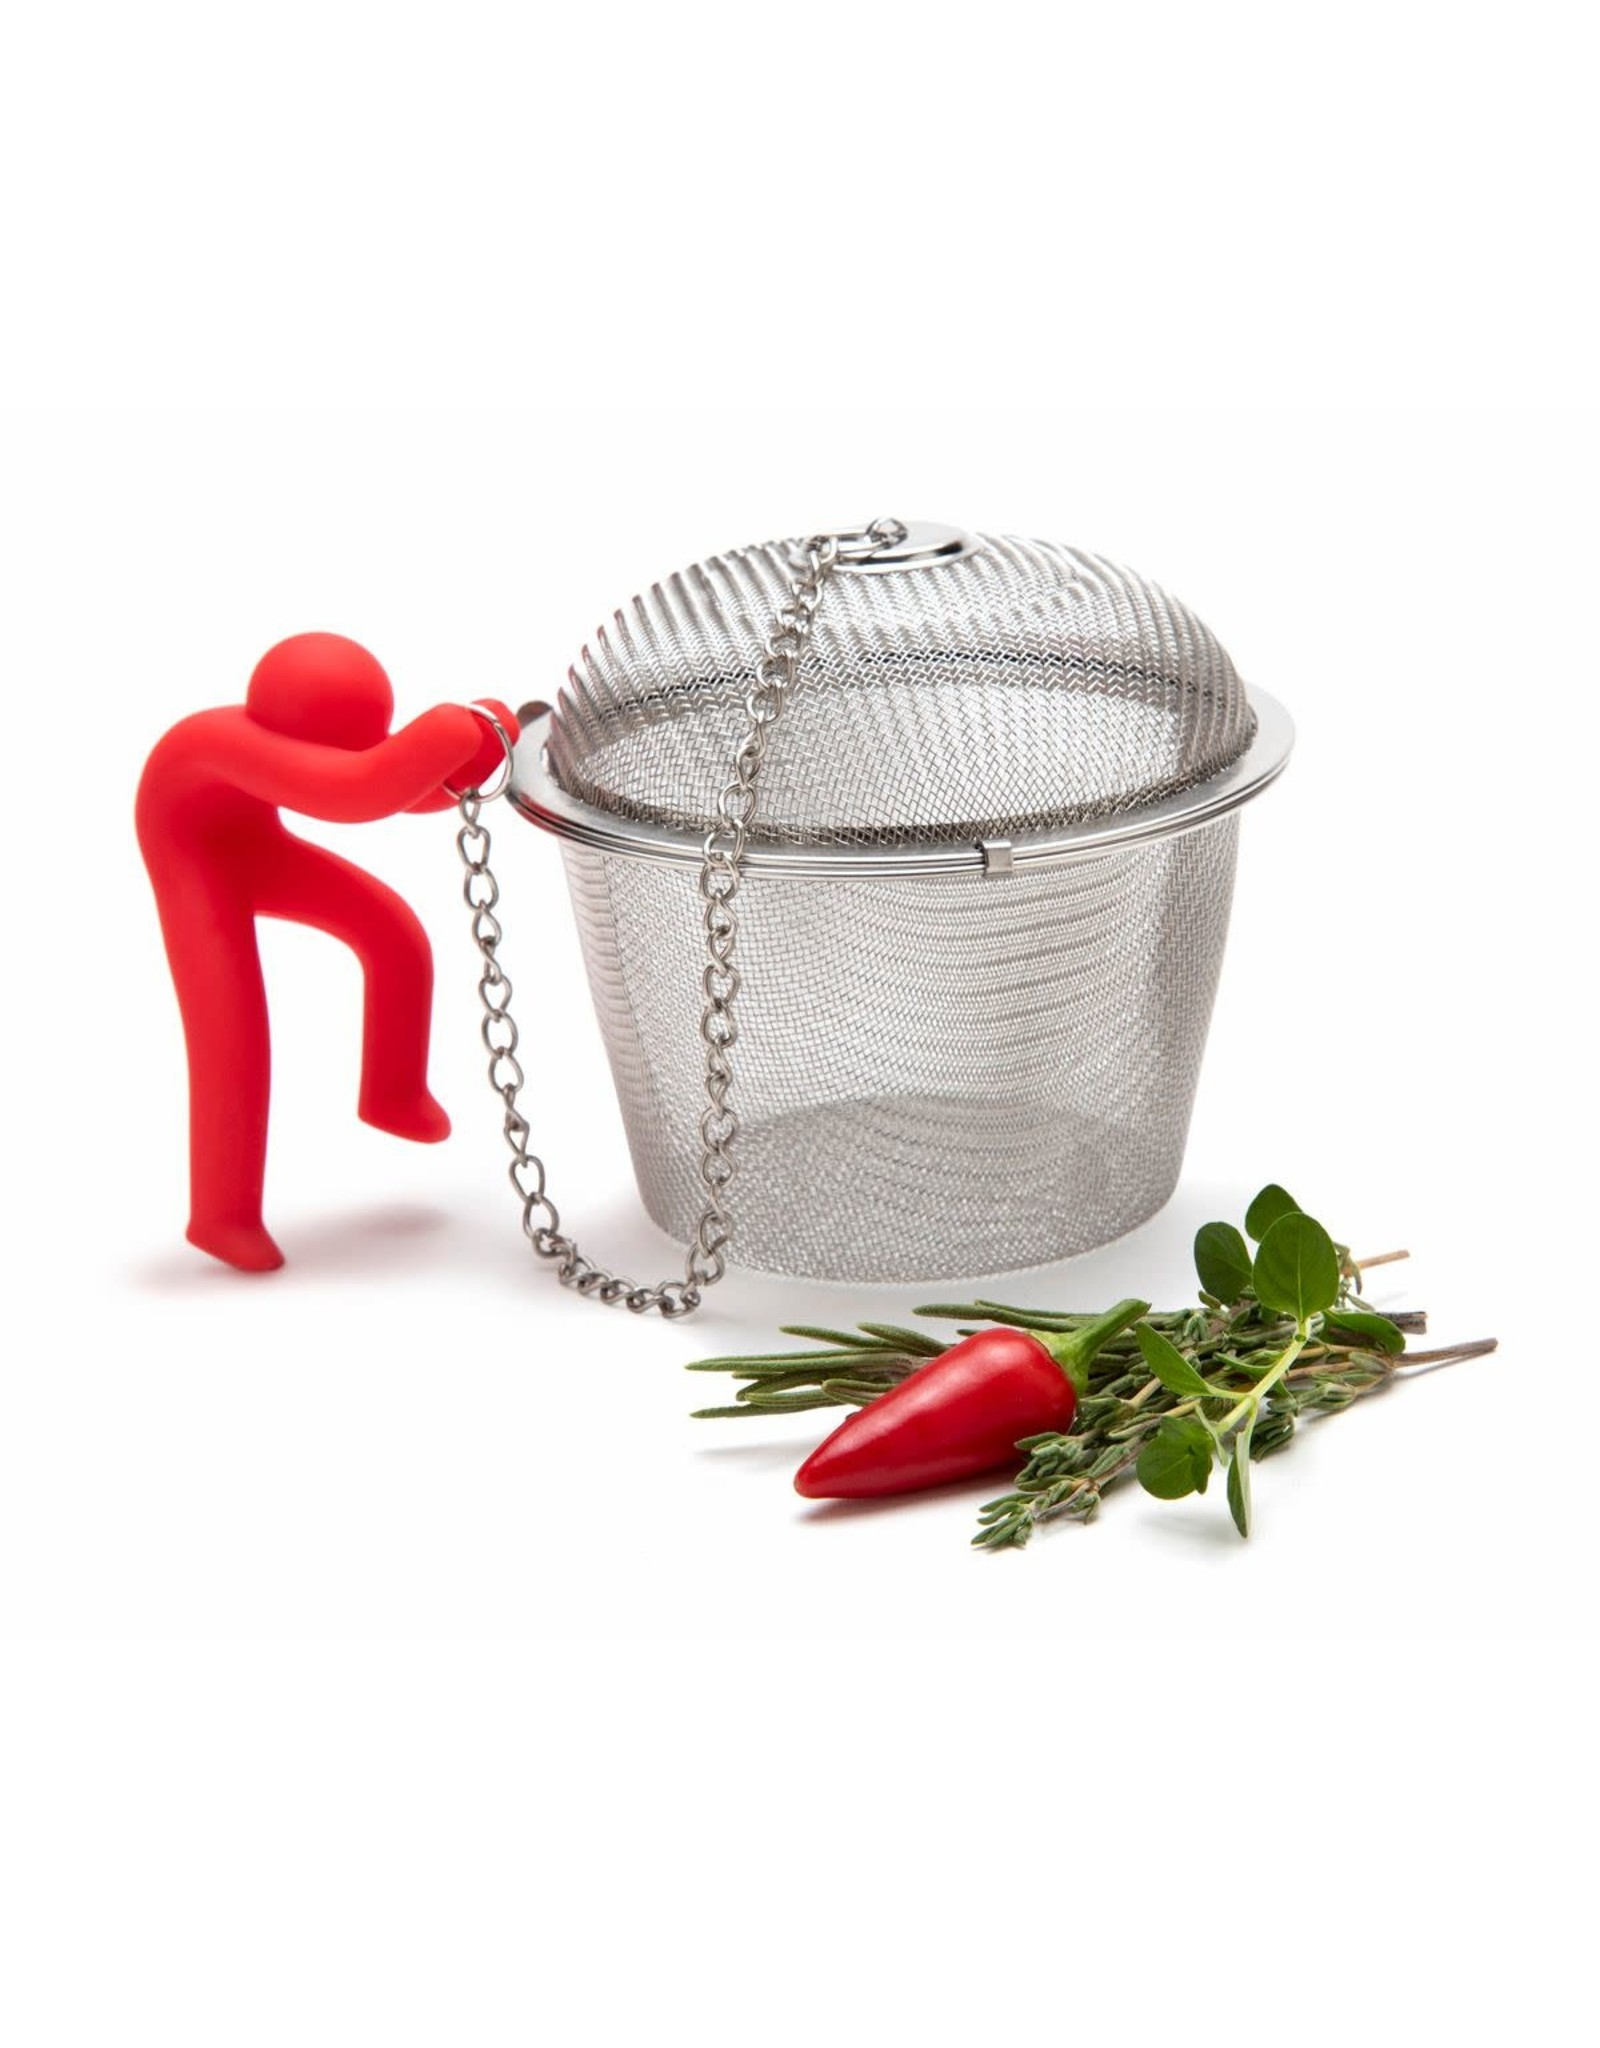 Monkey Business herb infuser with climbing figure